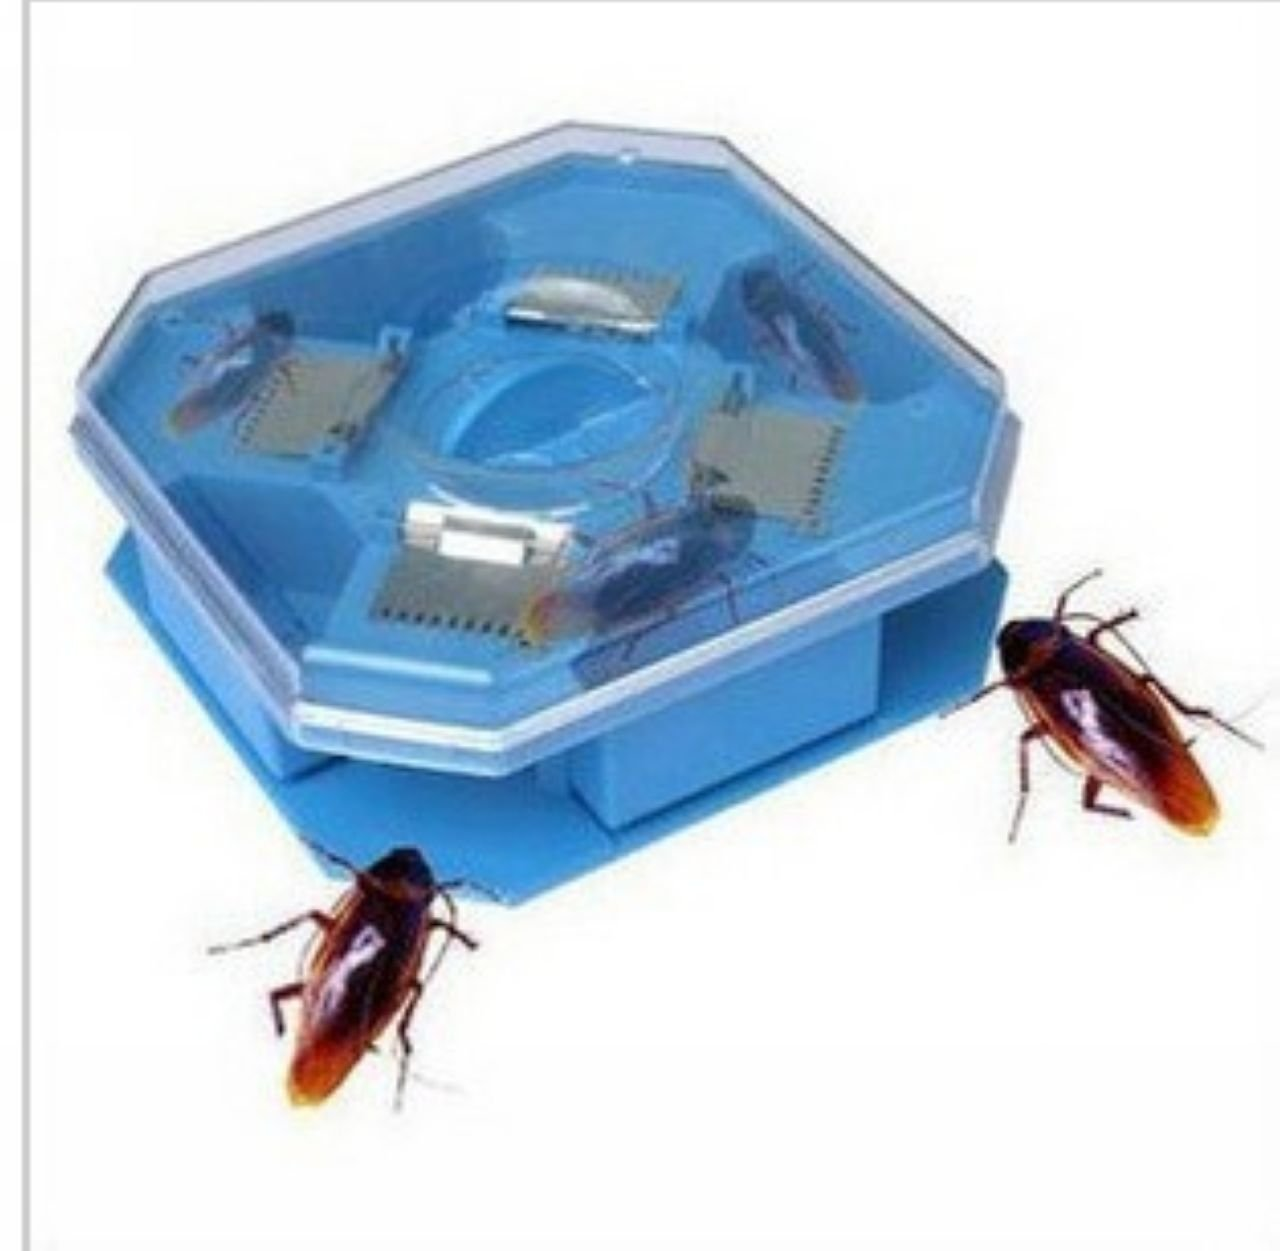 Cheap Cockroach Trap, find Cockroach Trap deals on line at Alibaba.com